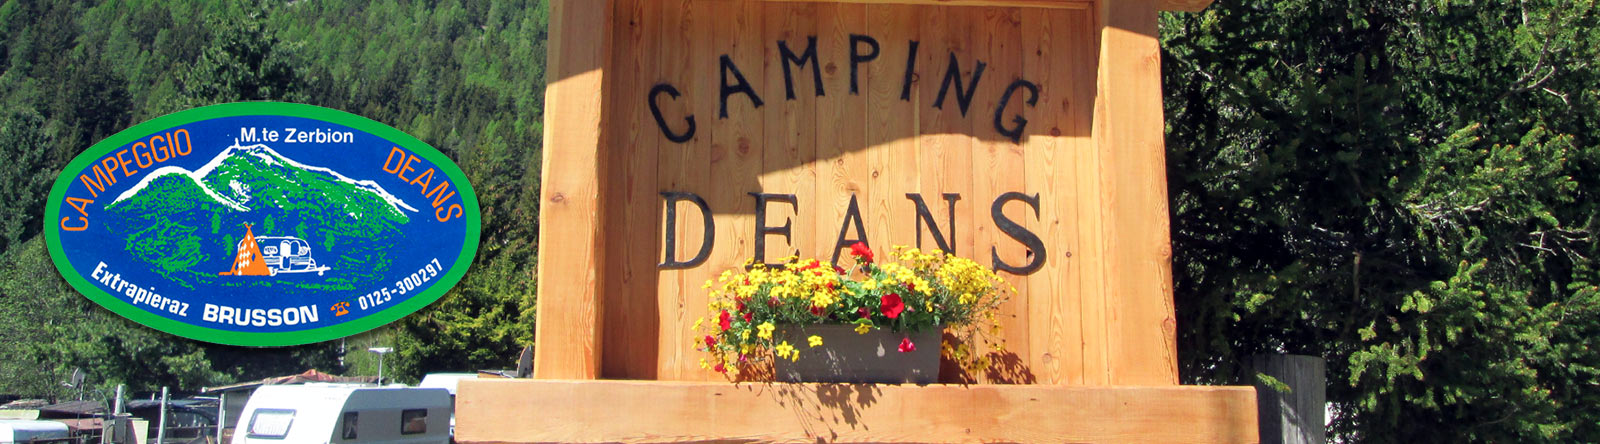 Camping Deans Brusson